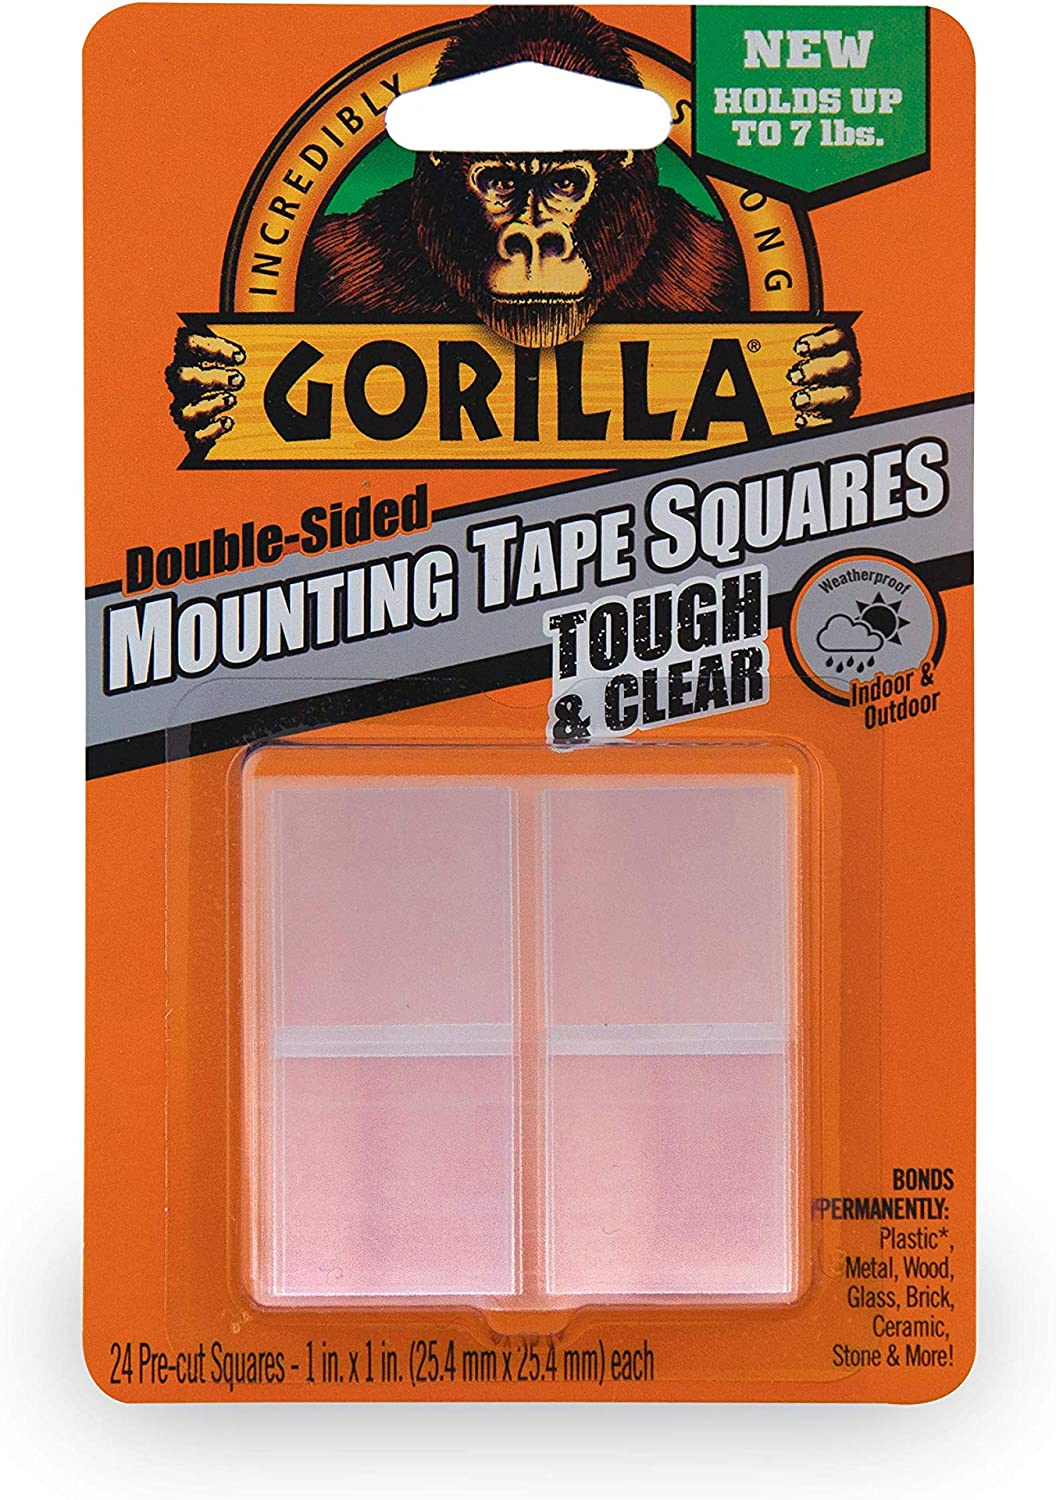 """Gorilla Tough & Clear Double Sided Mounting Tape Squares, 24 1"""" Pre-Cut Squares, Clear, (Pack of 1)"""